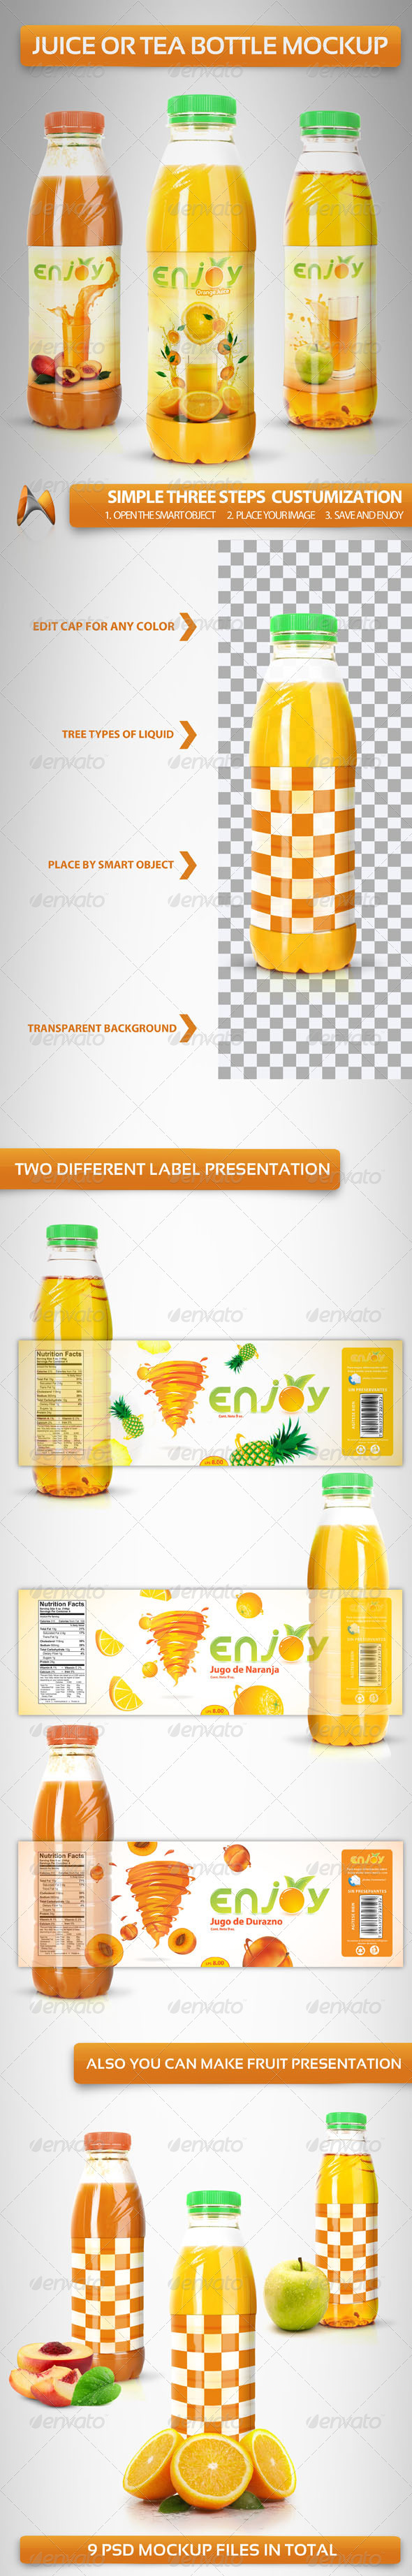 Juice or Tea Bottle Mockup - Food and Drink Packaging